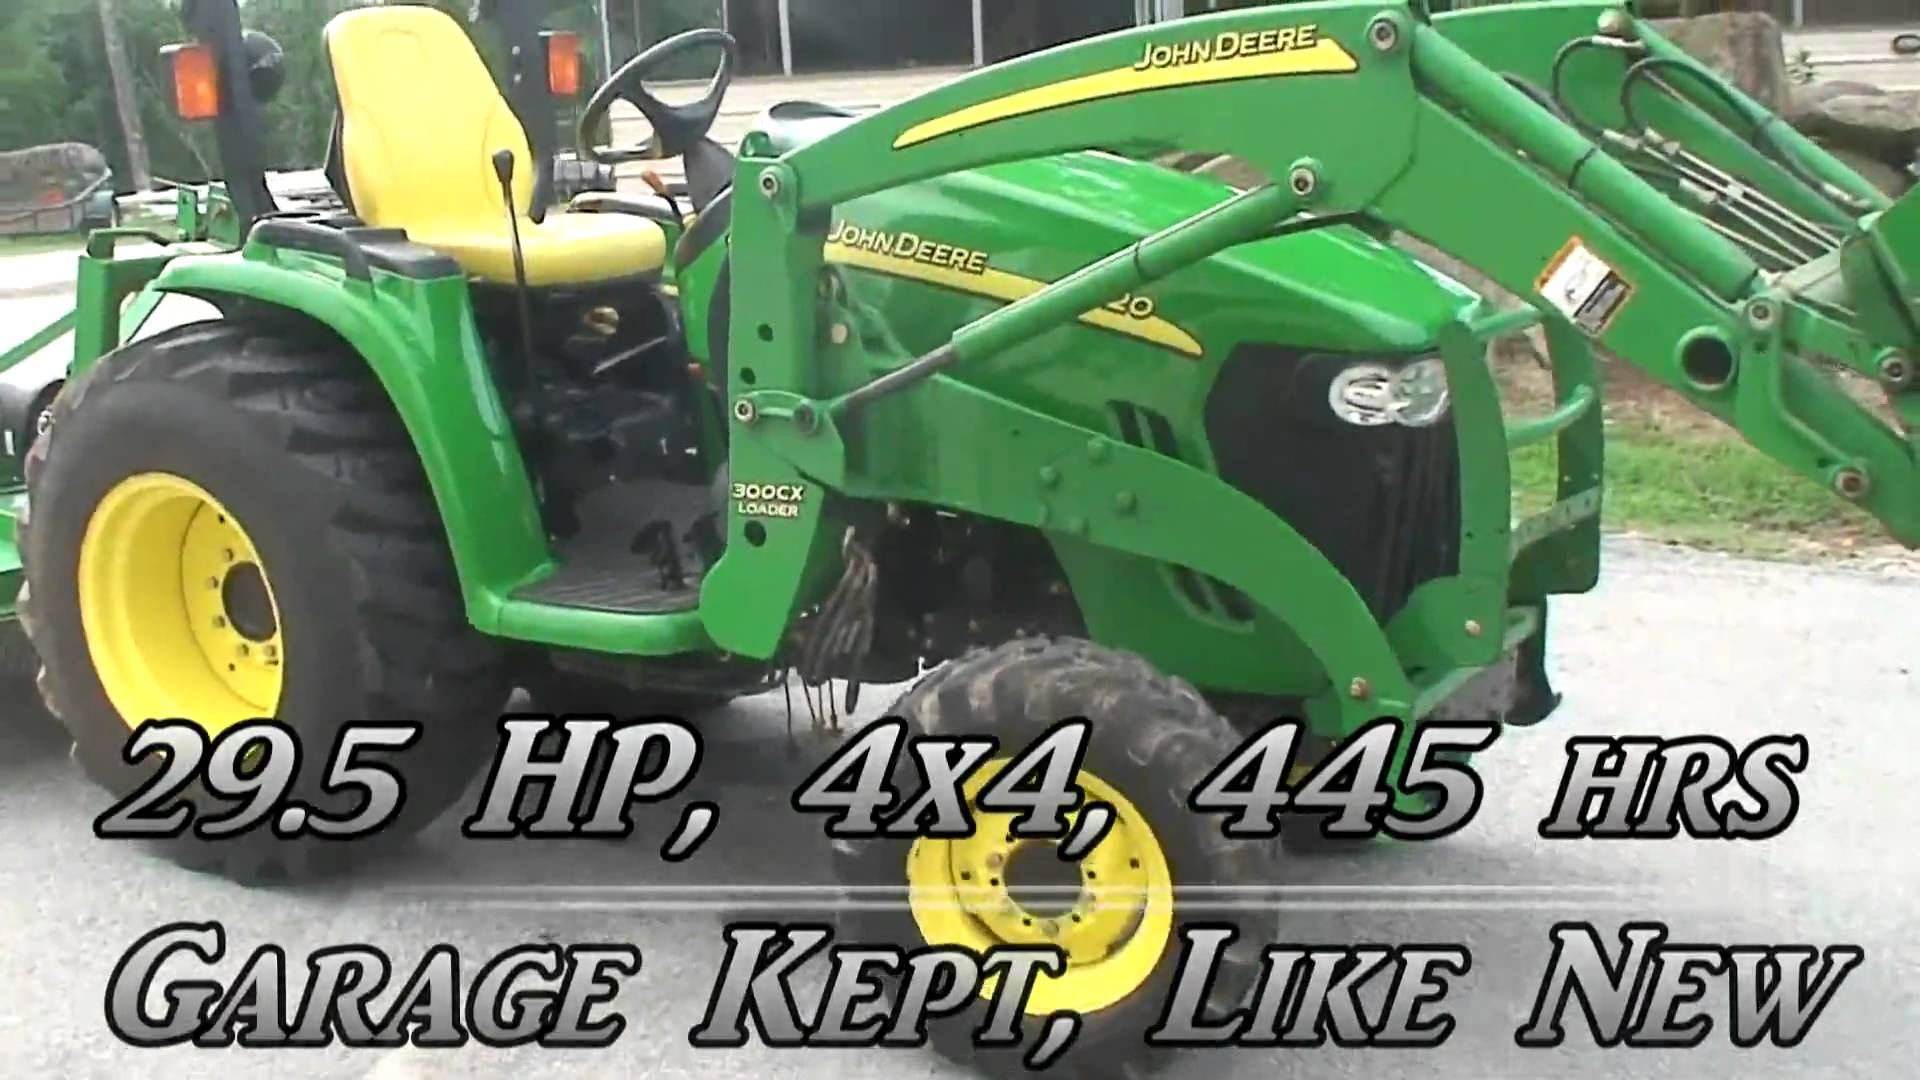 John Deere 3120 utility tractor with 4wd, hydro transmission, and ...